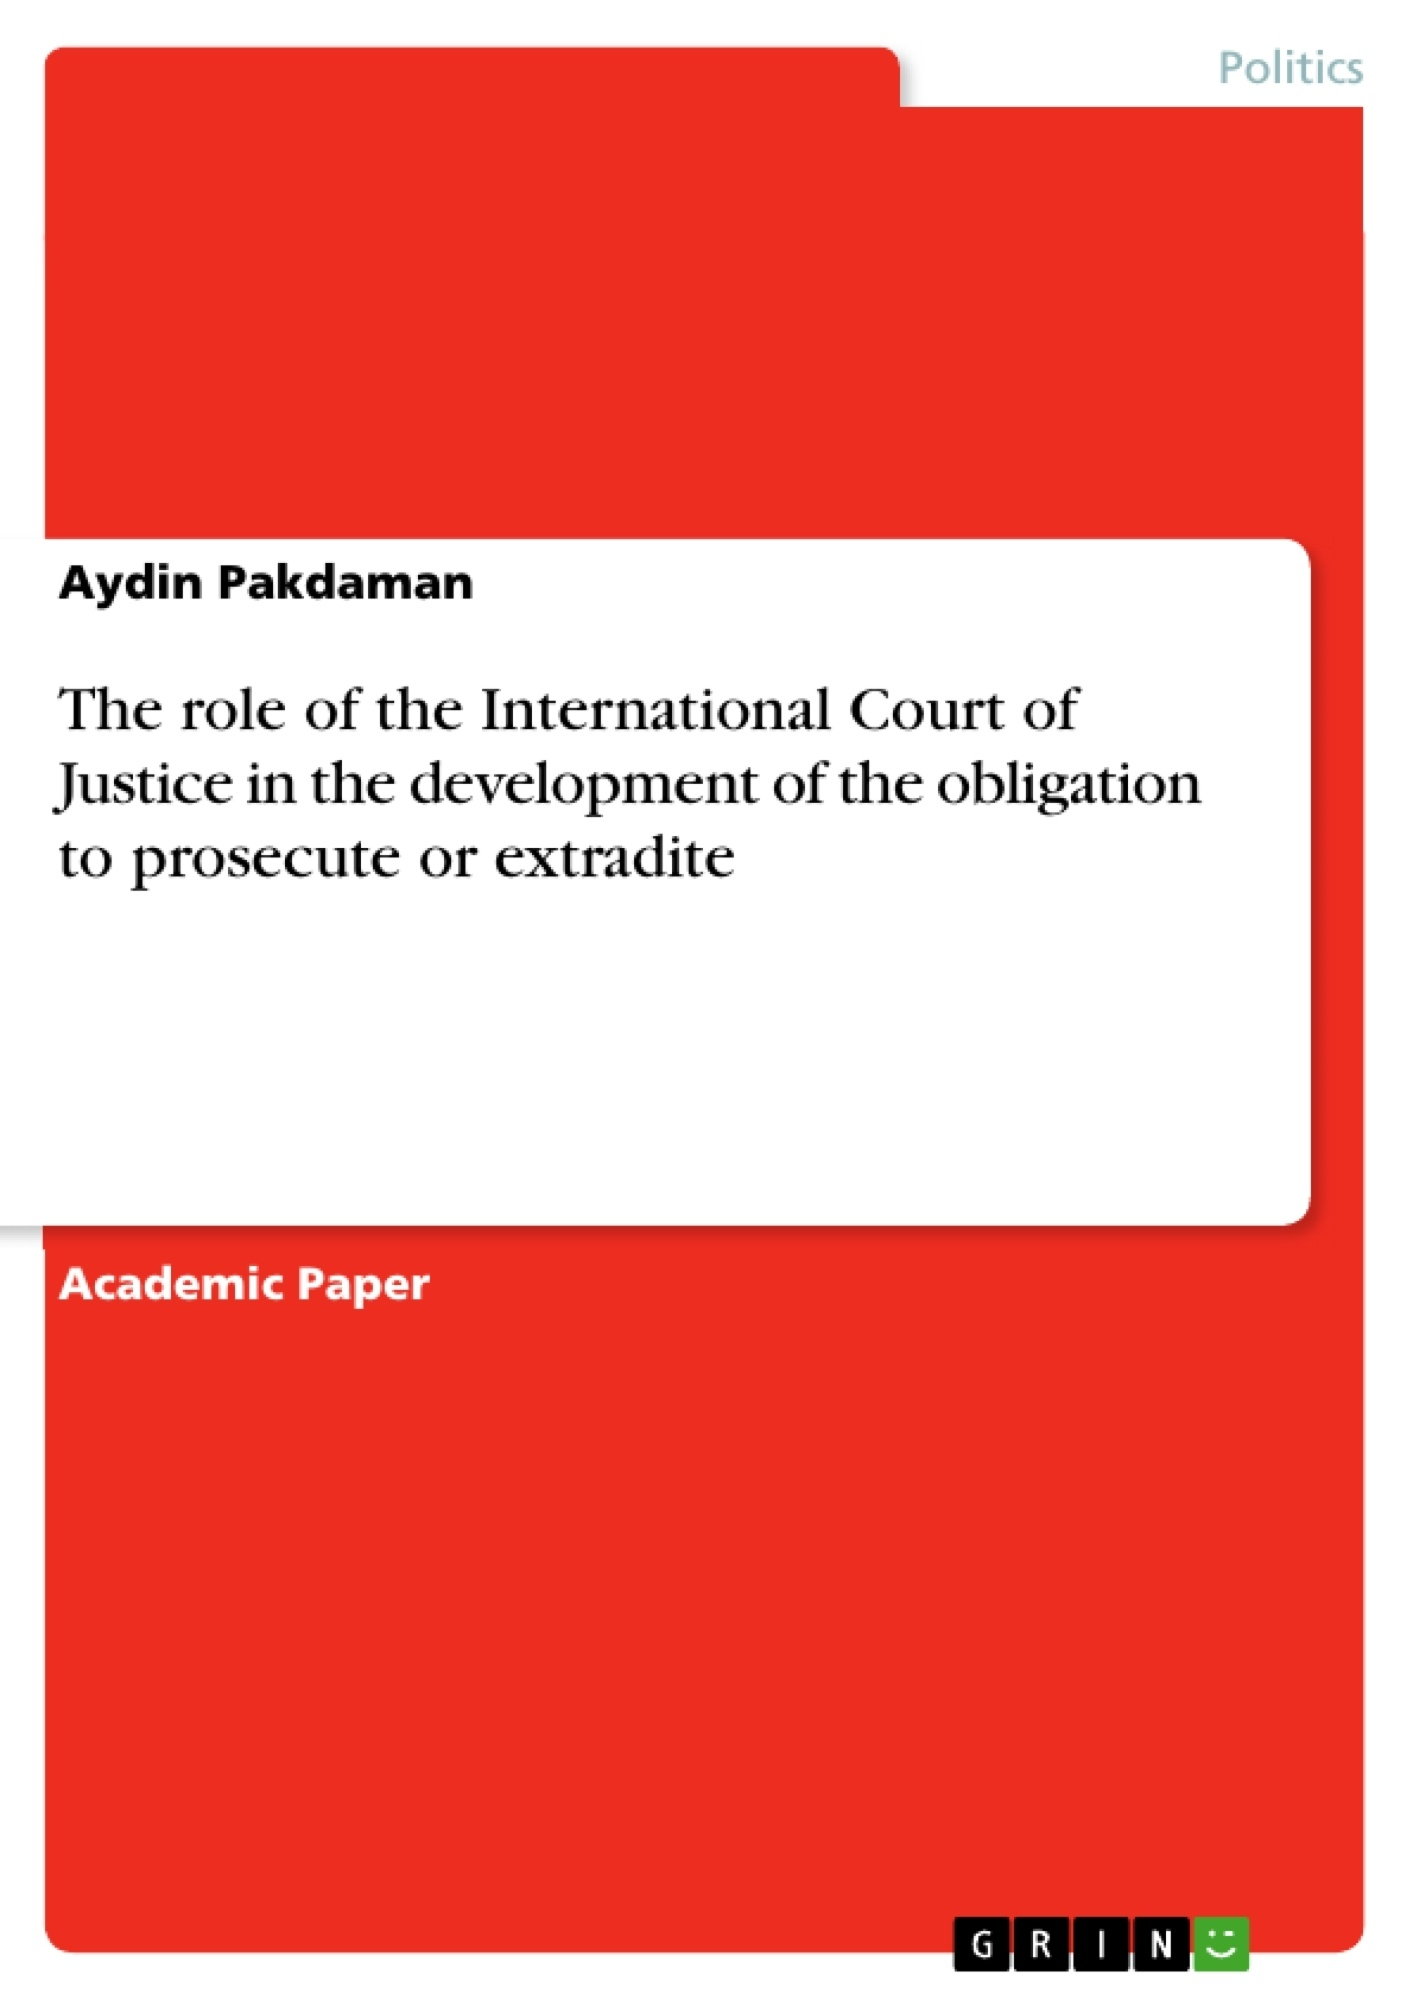 Title: The role of the International Court of Justice in the development of the obligation to prosecute or extradite